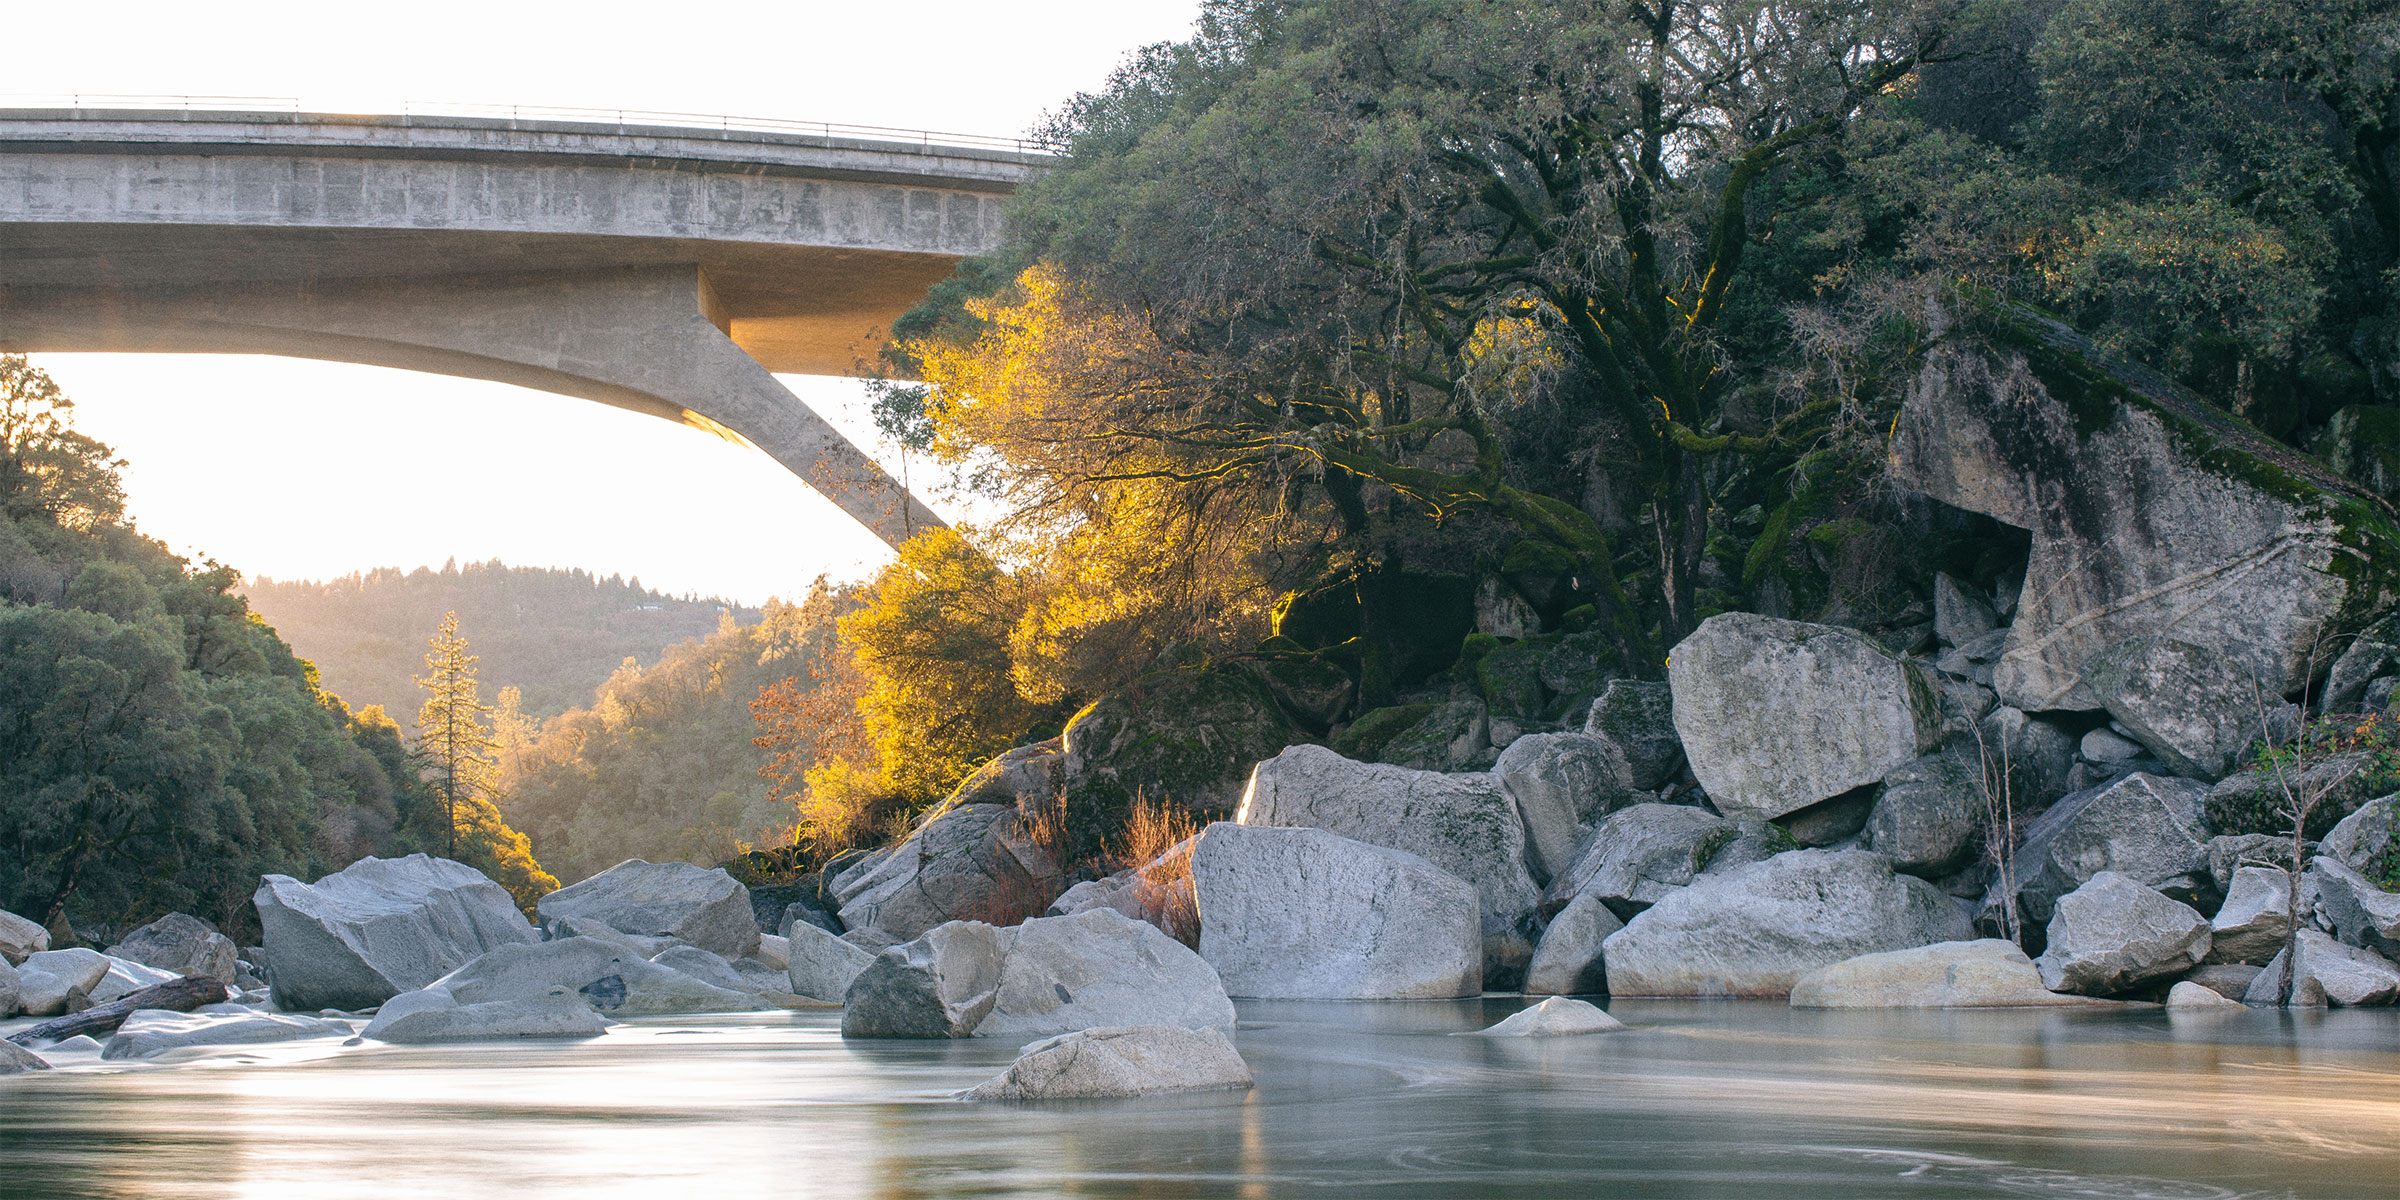 Long-exposure photo of the South Yuba River at golden hour, showing the water flowing around rocks and under a bridge, with trees on the right side bank